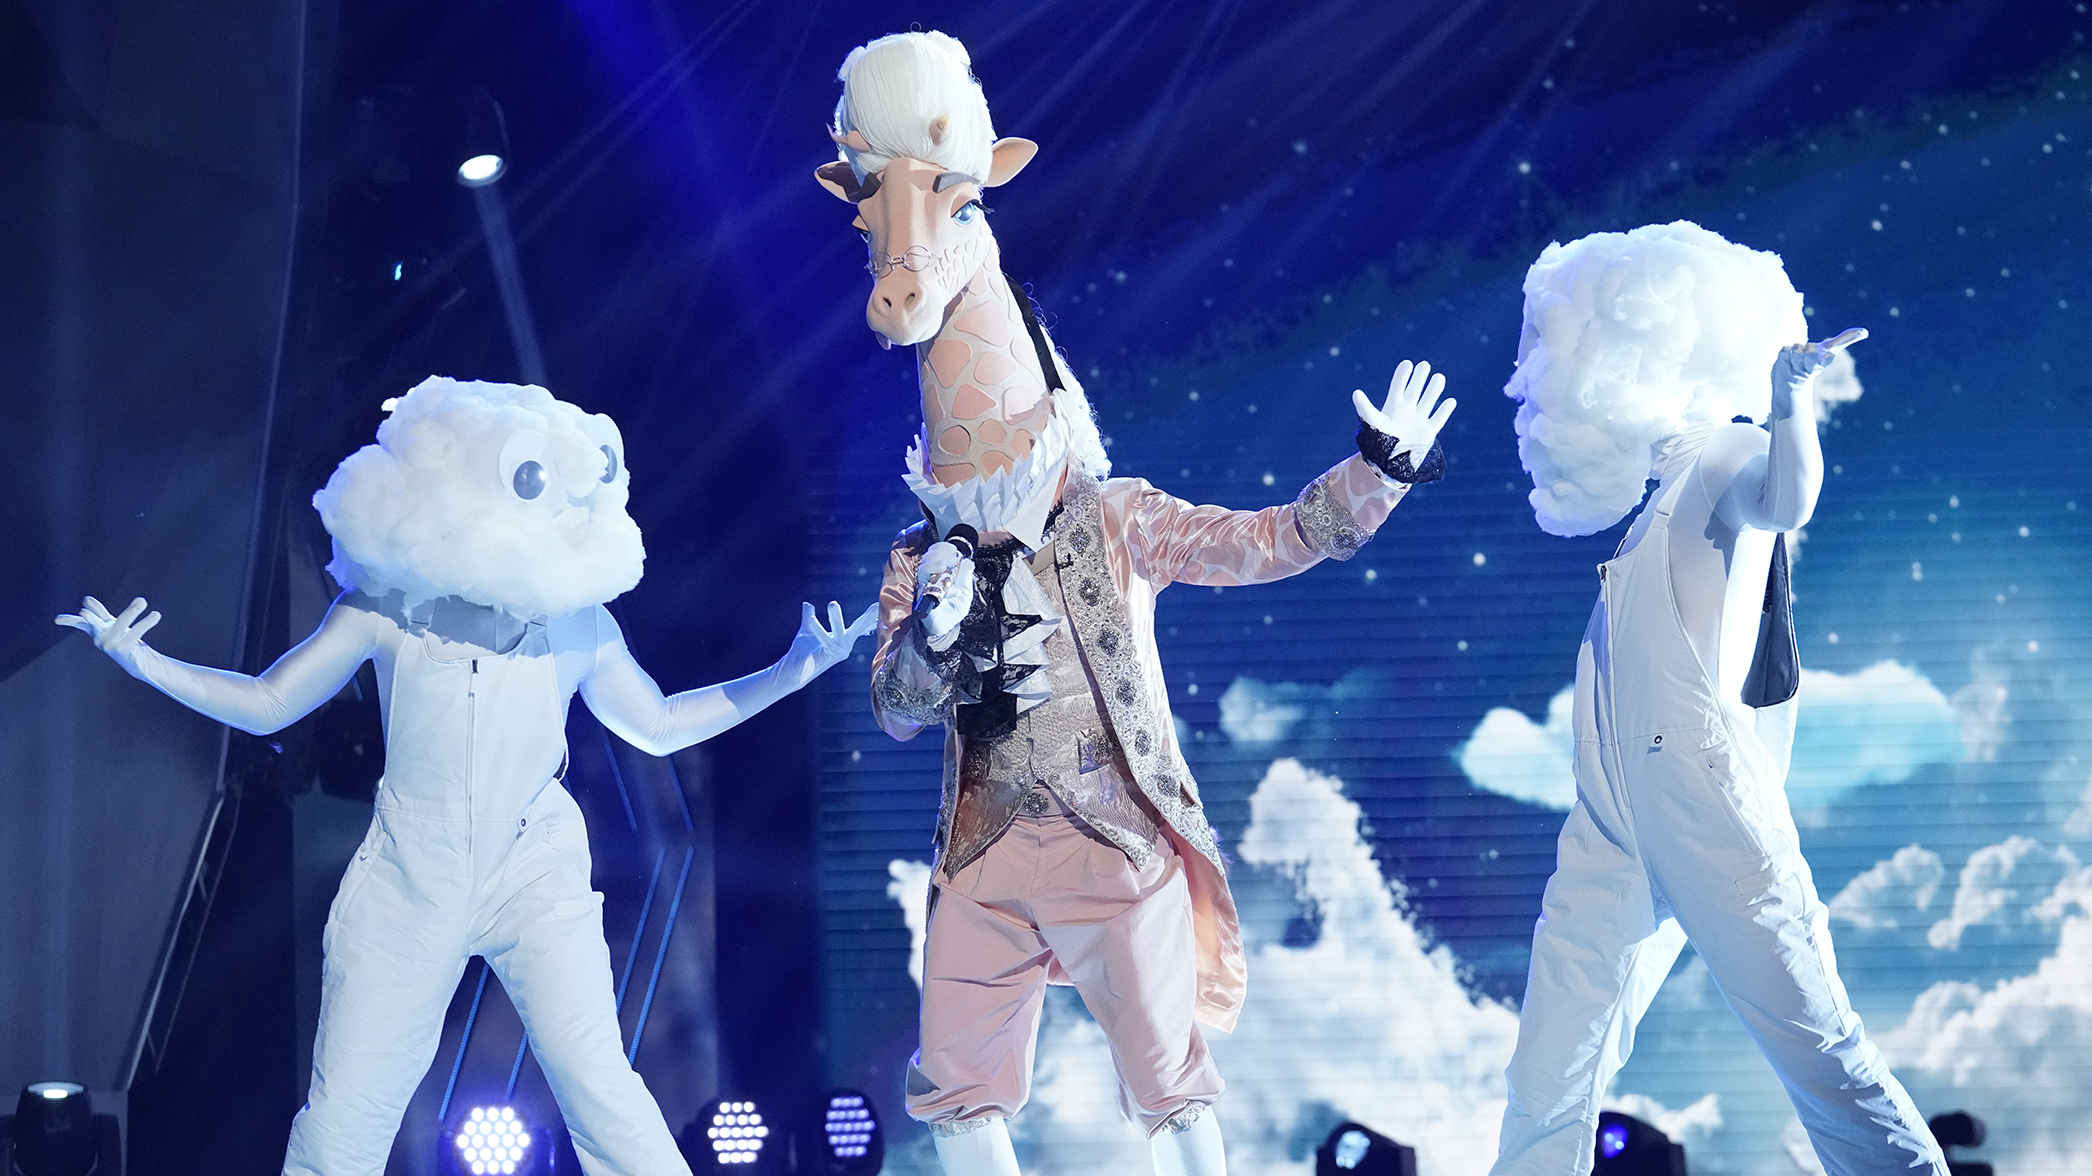 'The Masked Singer' renewed for fifth season